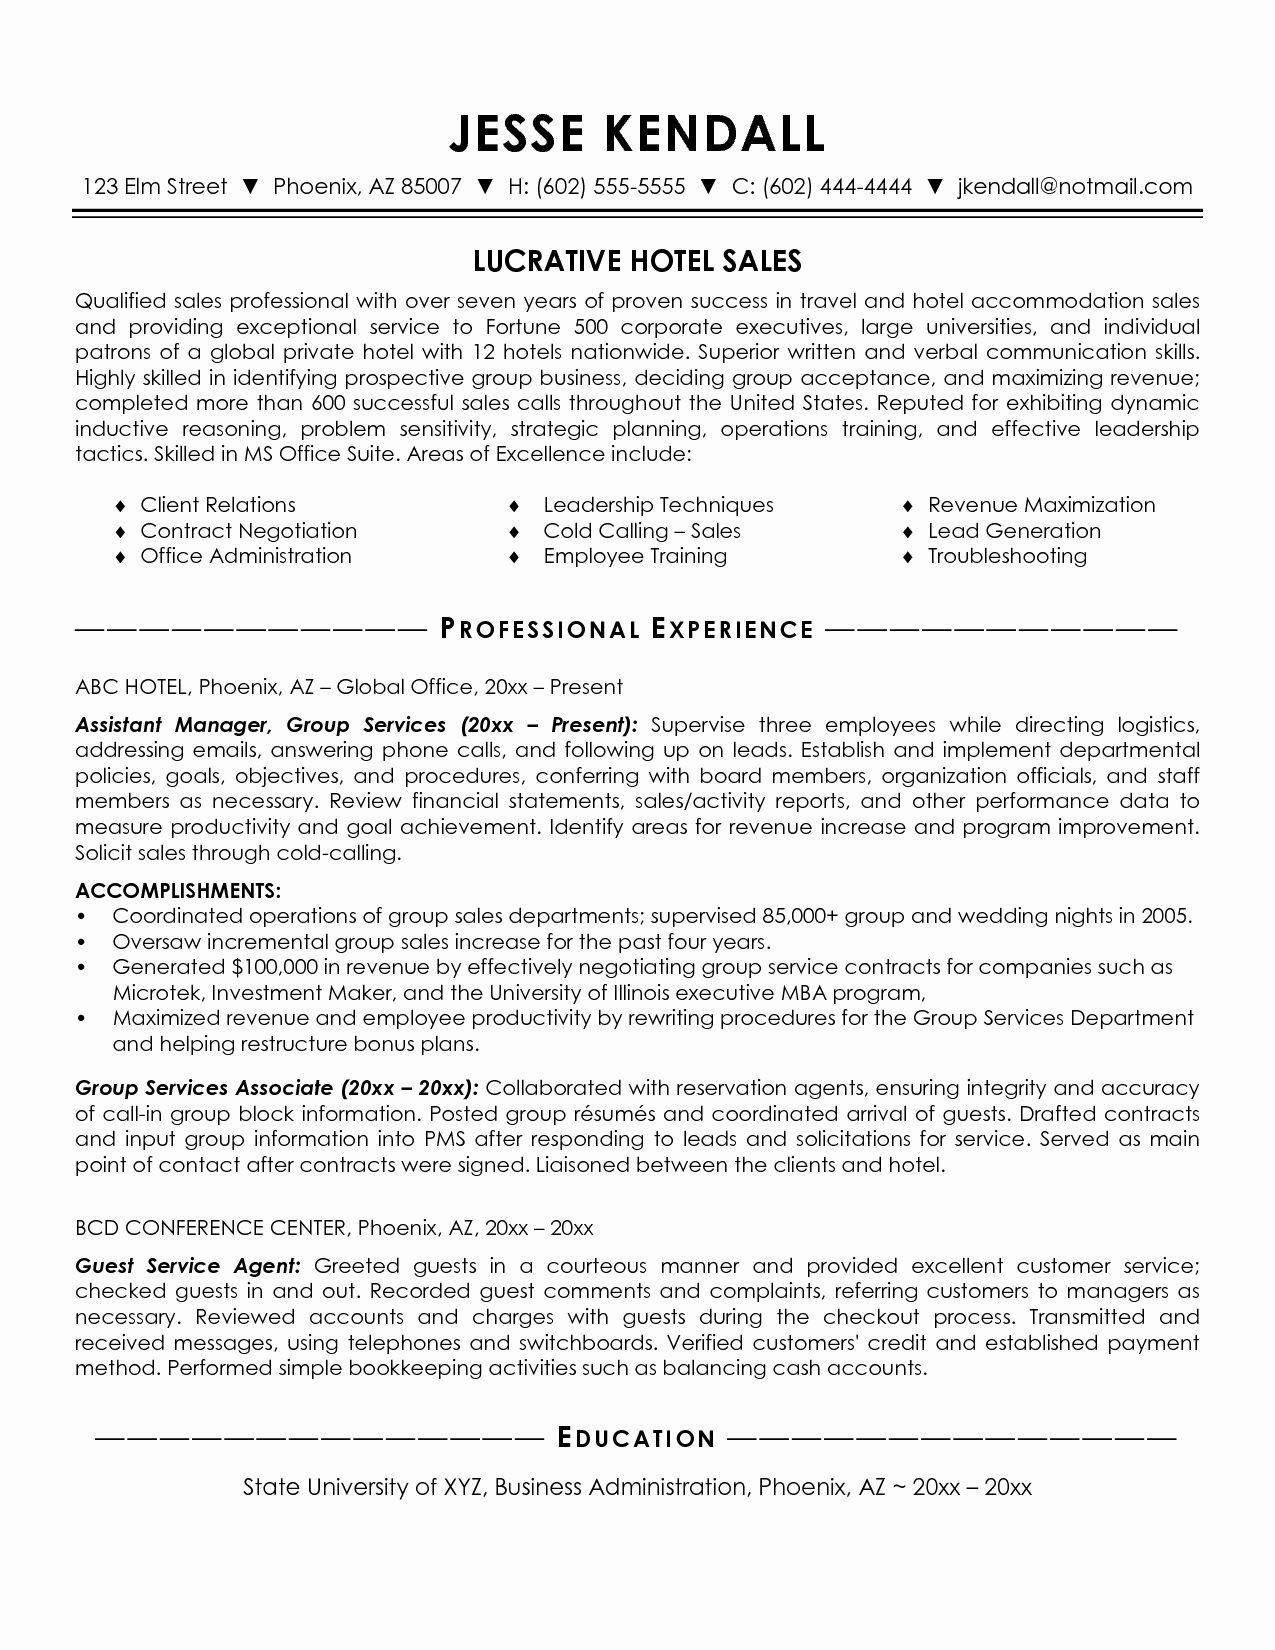 Beautiful hotel sales manager resume resume template